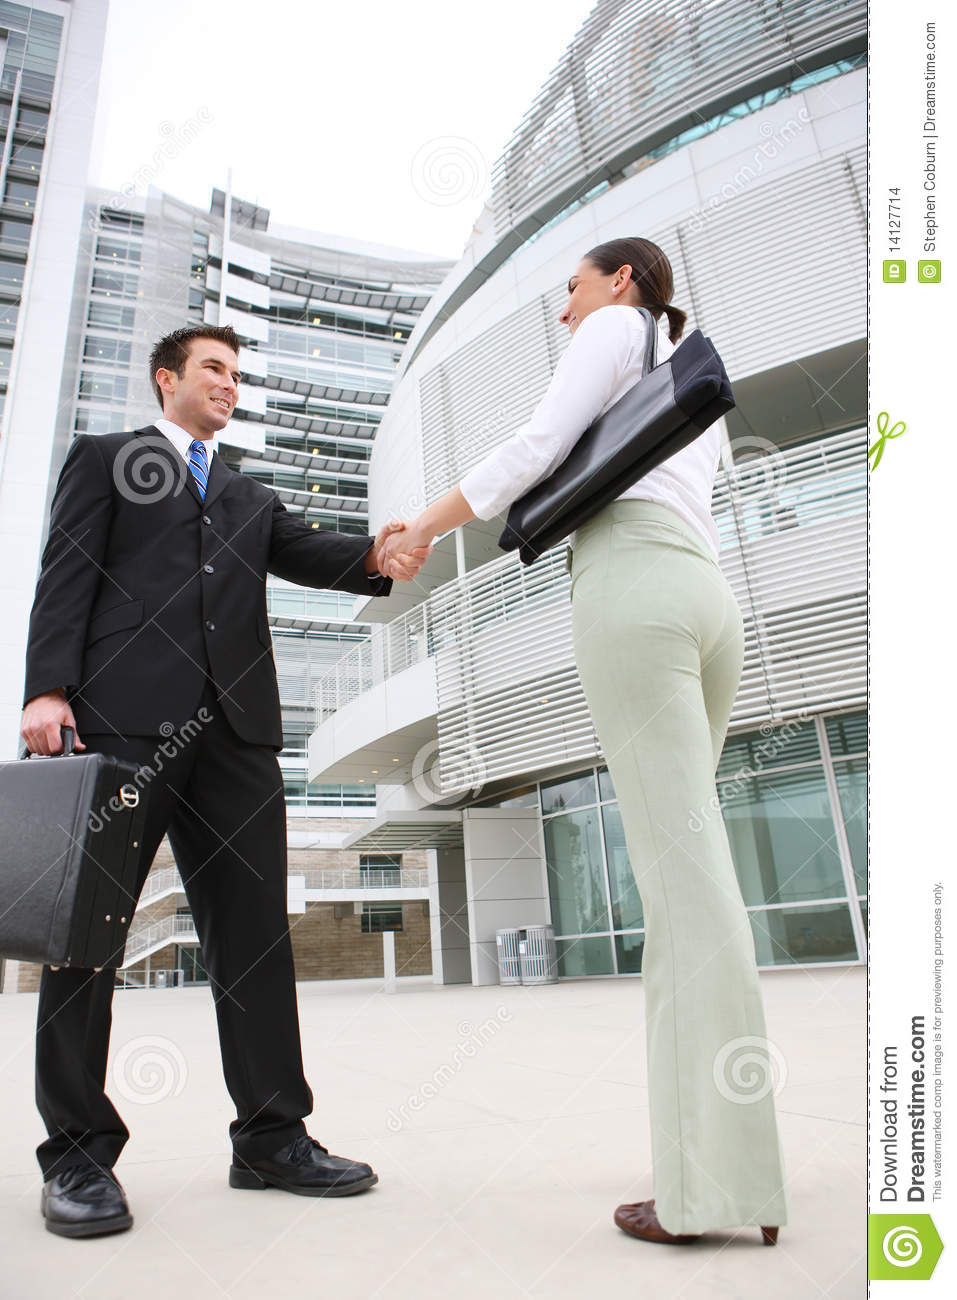 A Business Man Team Handshake At Office Building